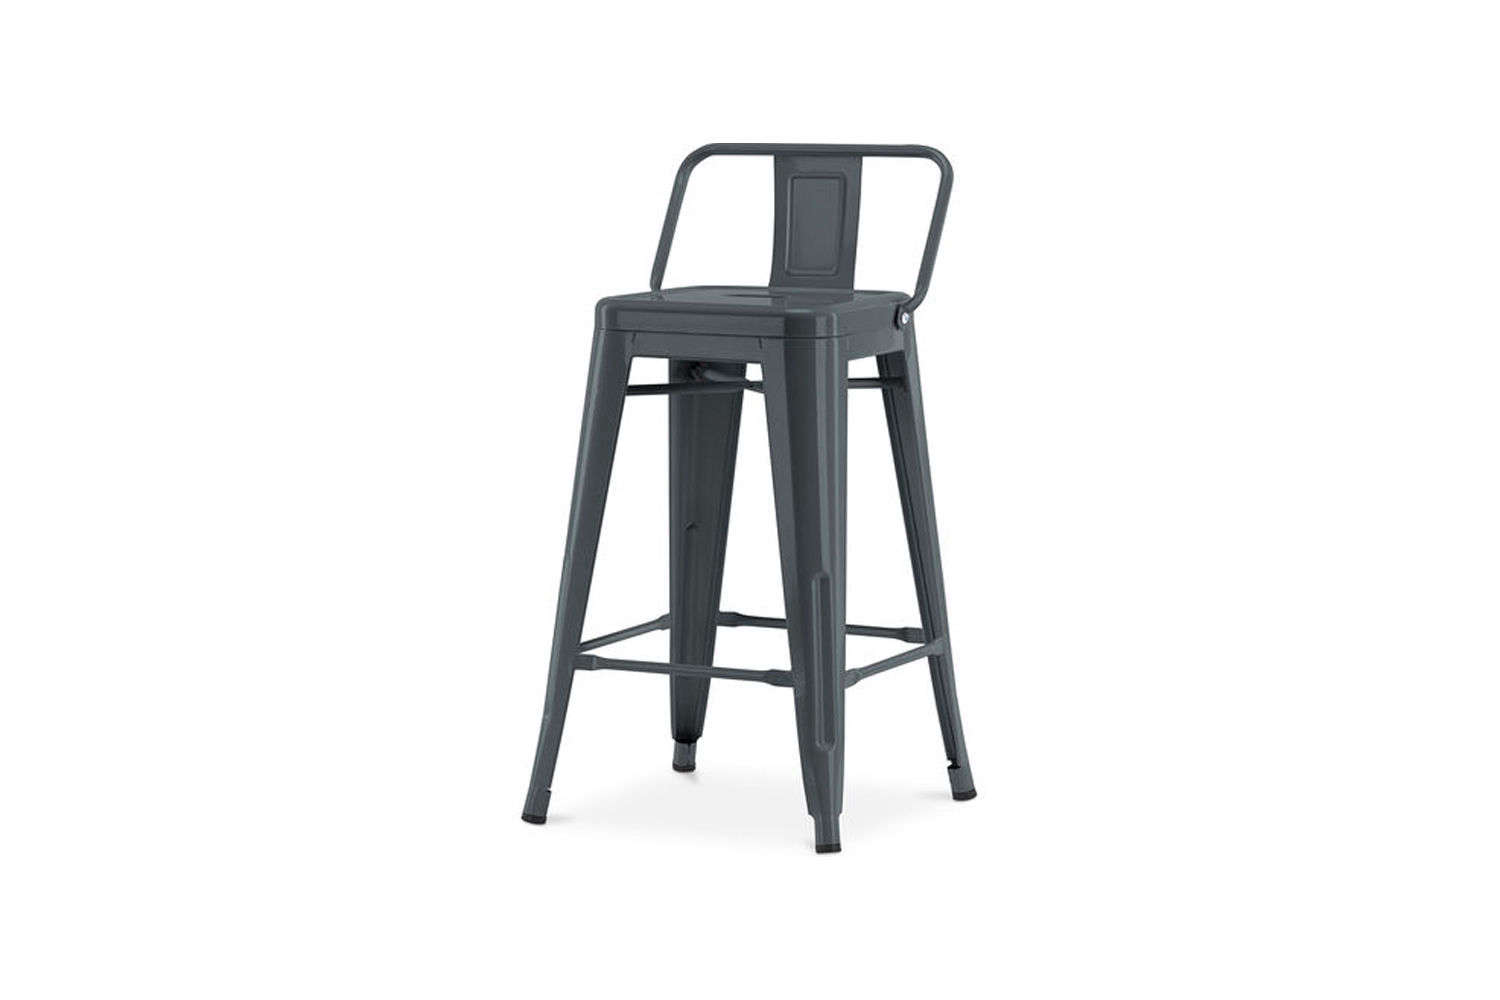 The classic industrial stool, the Tolix Tabouret HA Stool, comes in a wide range of colors; €3 at Tolix.